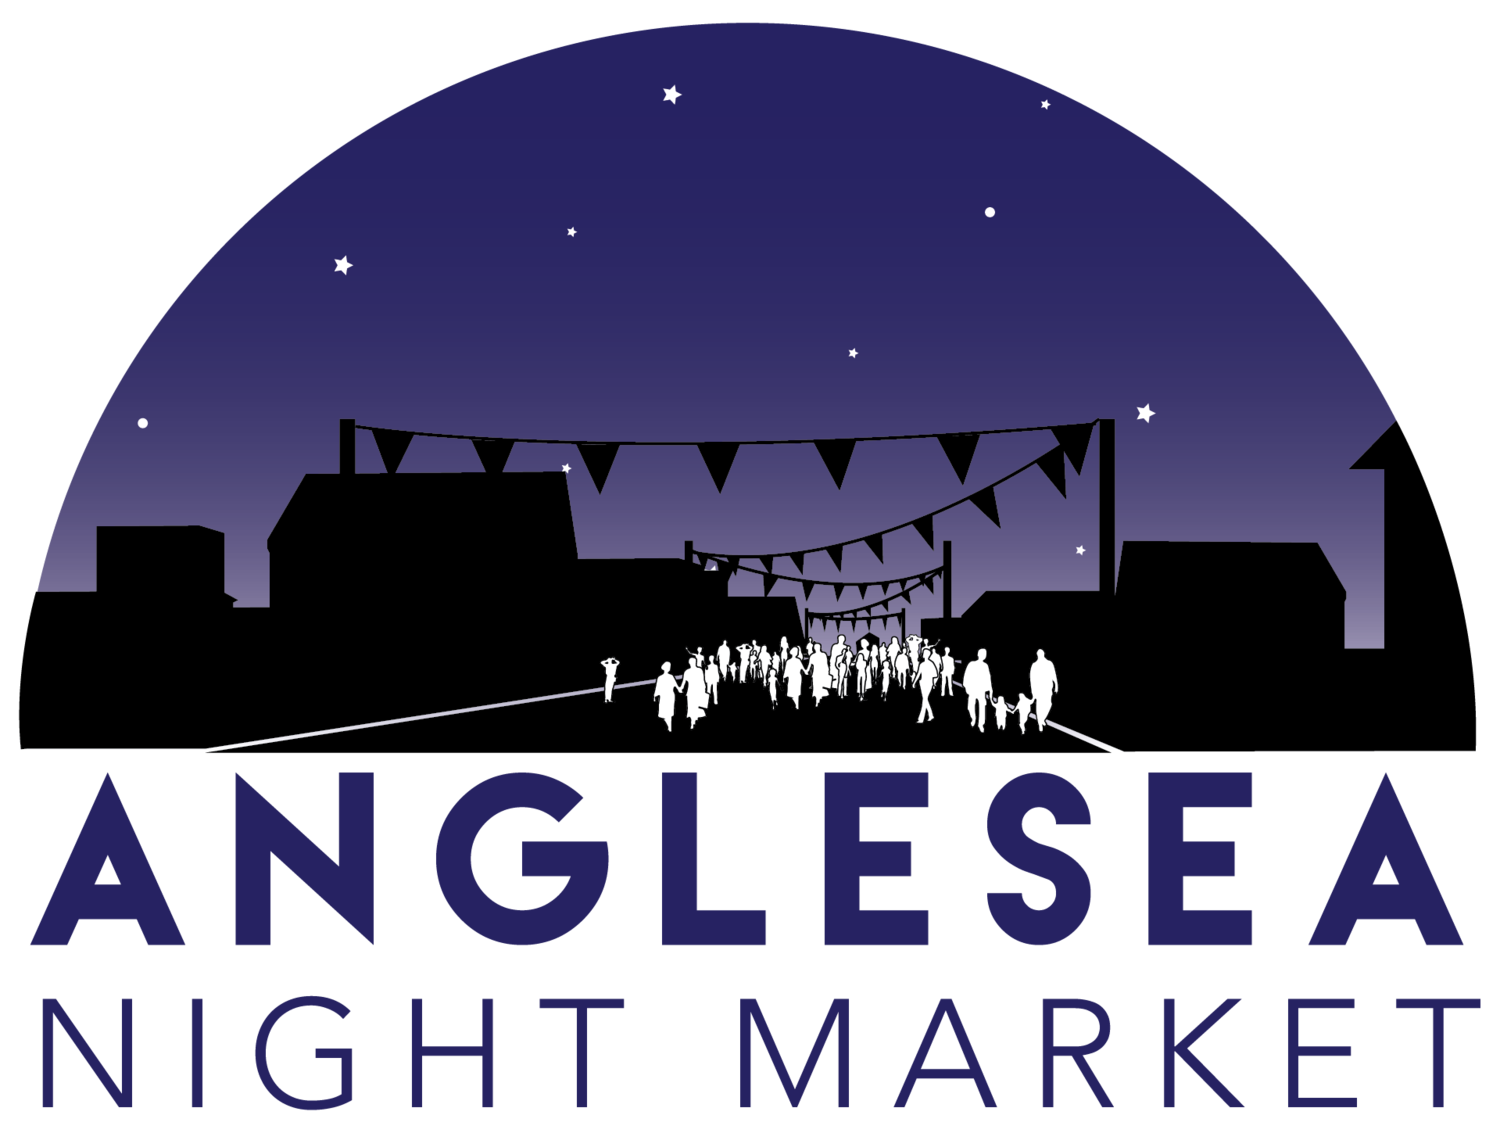 Marketplace drawing night market. Anglesea angelsea